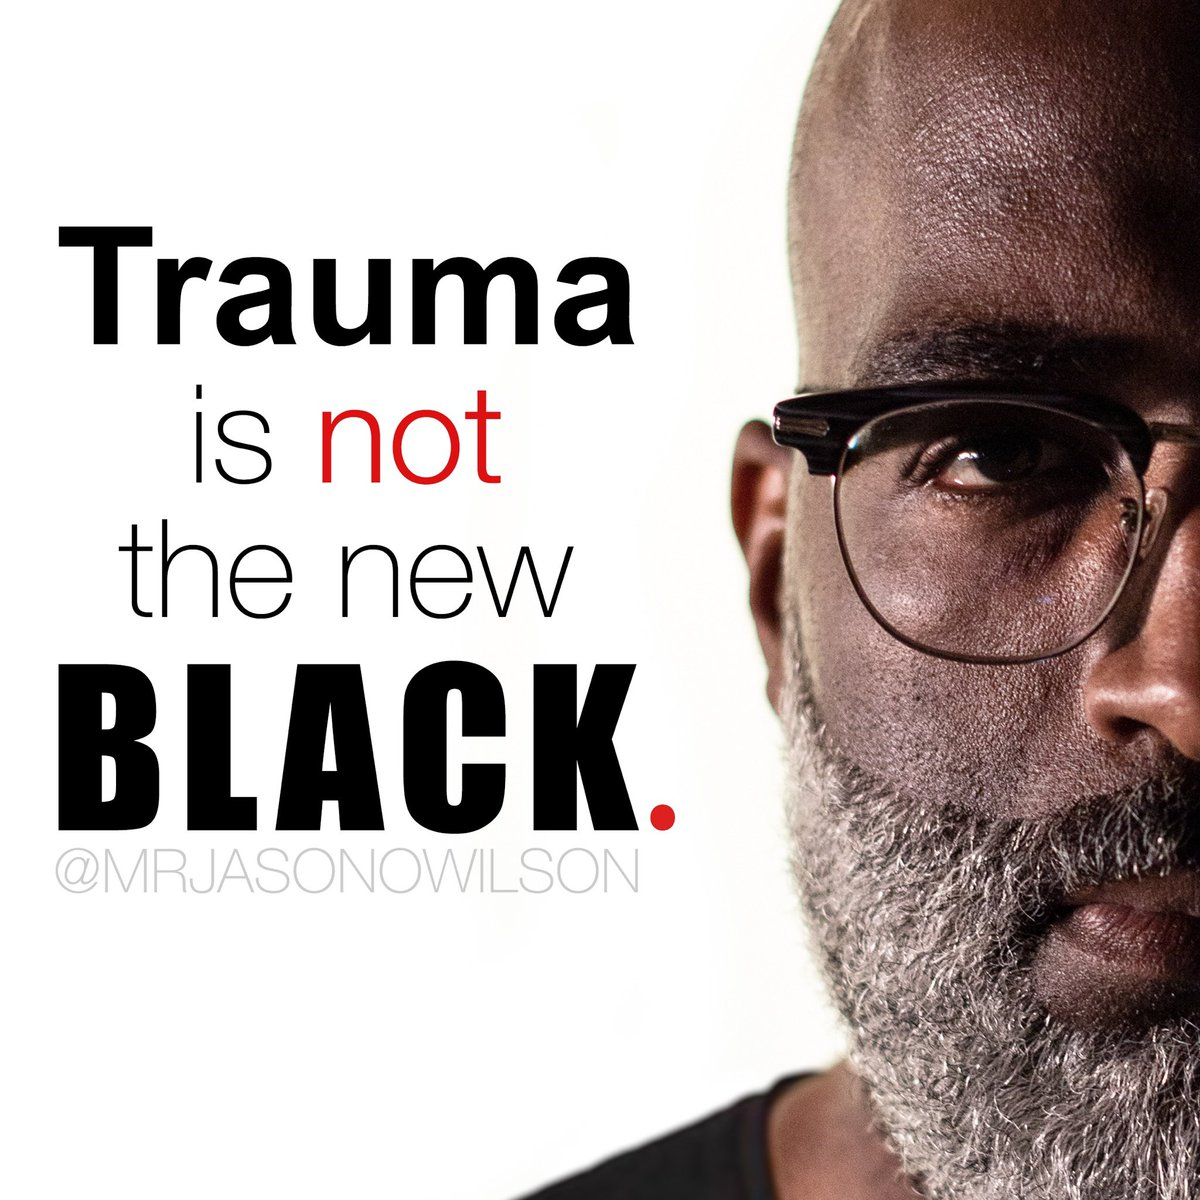 Trauma is not the new black!